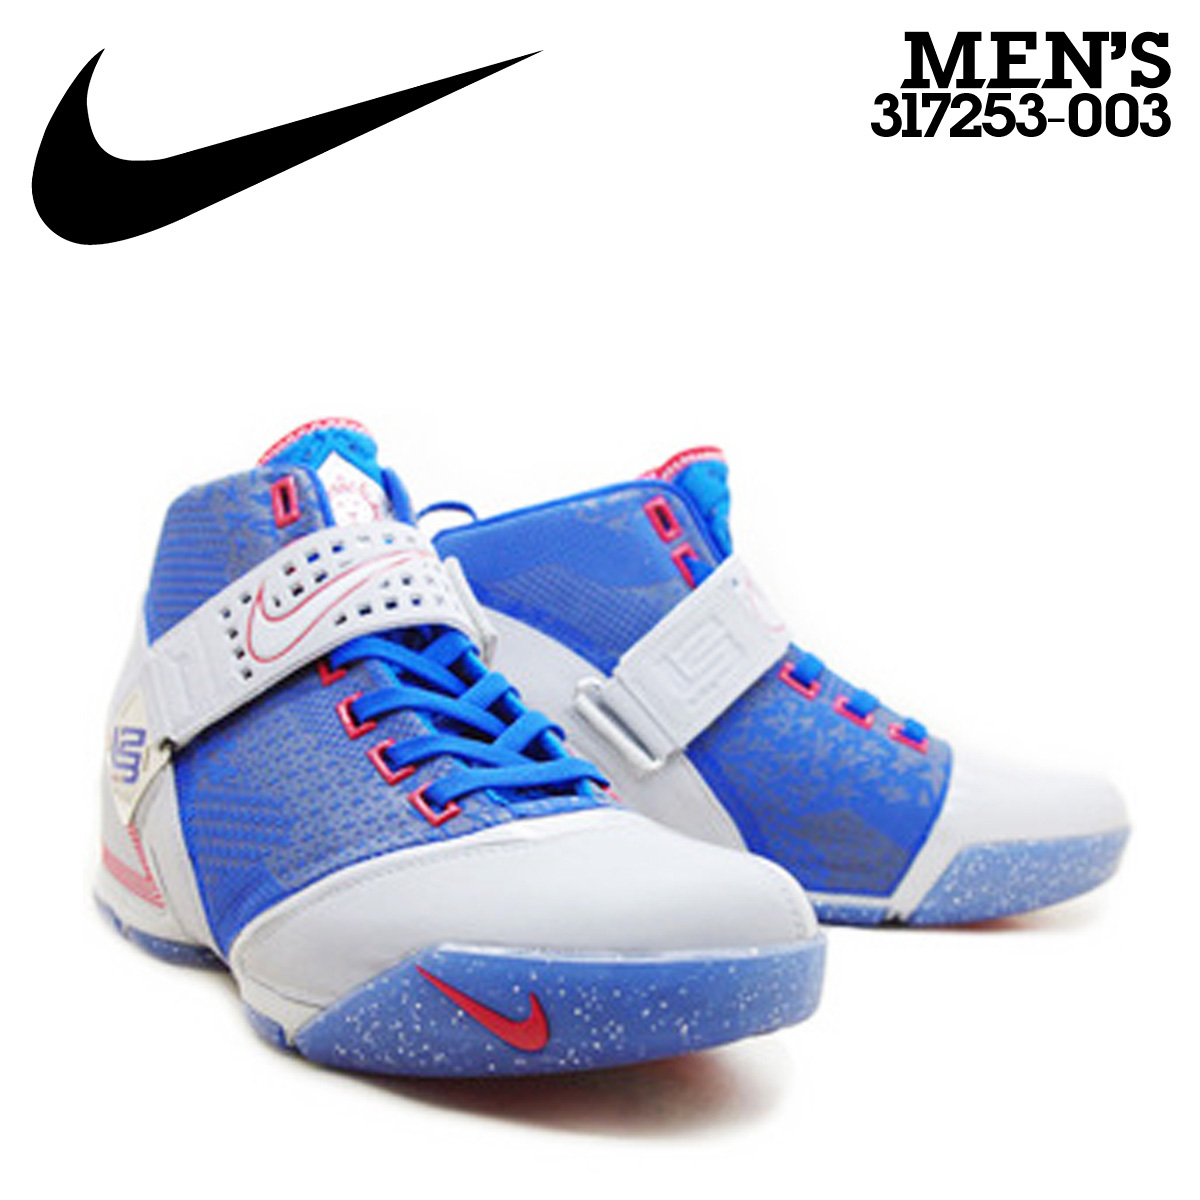 8b6196d52d2c Nike NIKE zoom LeBron sneaker ZOOM LEBRON V ALL STAR all-star 317253-003  men s blue